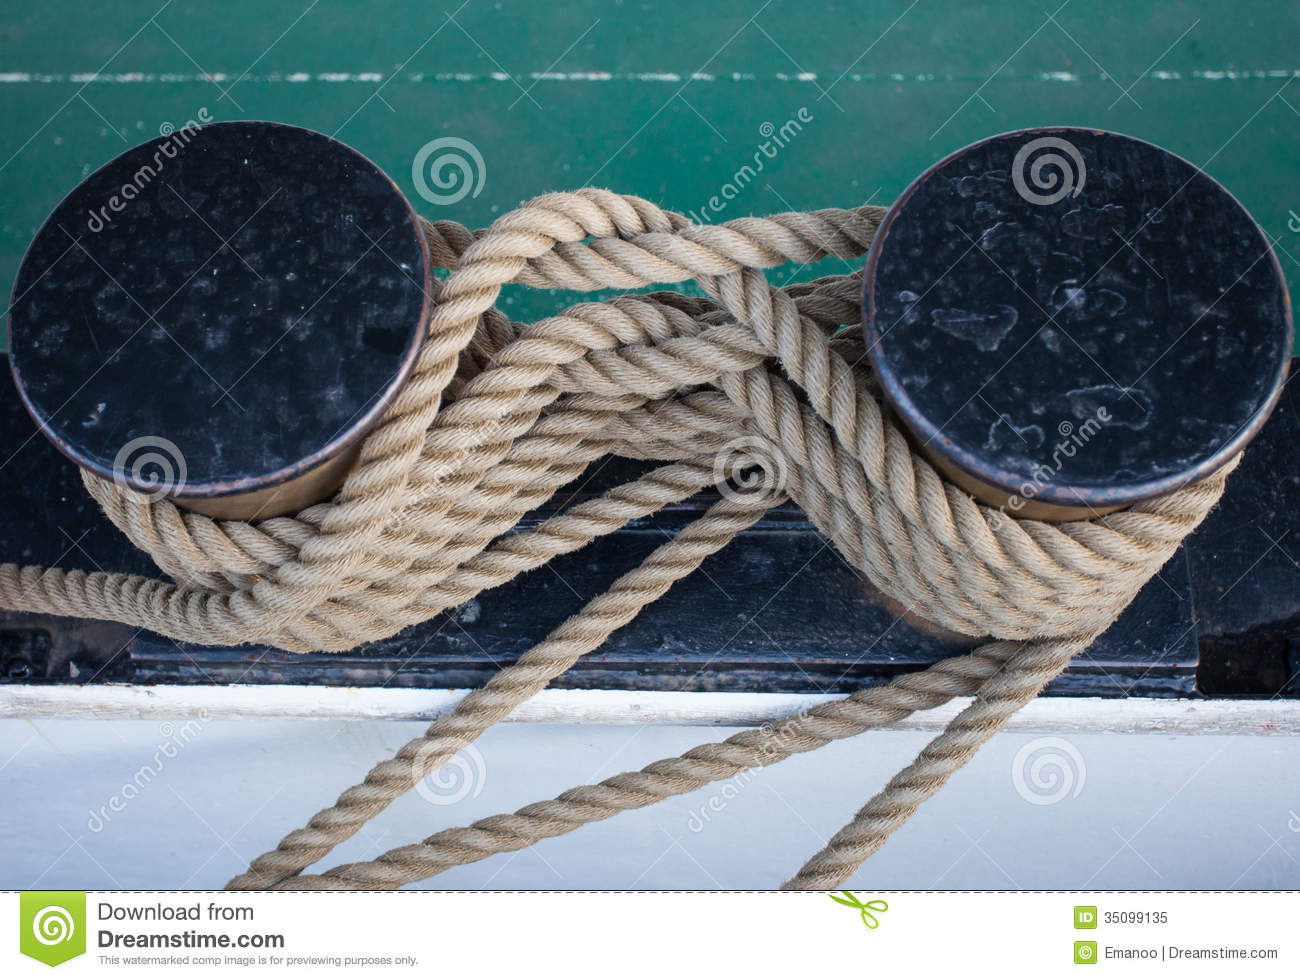 Tied rope on ship in harbor